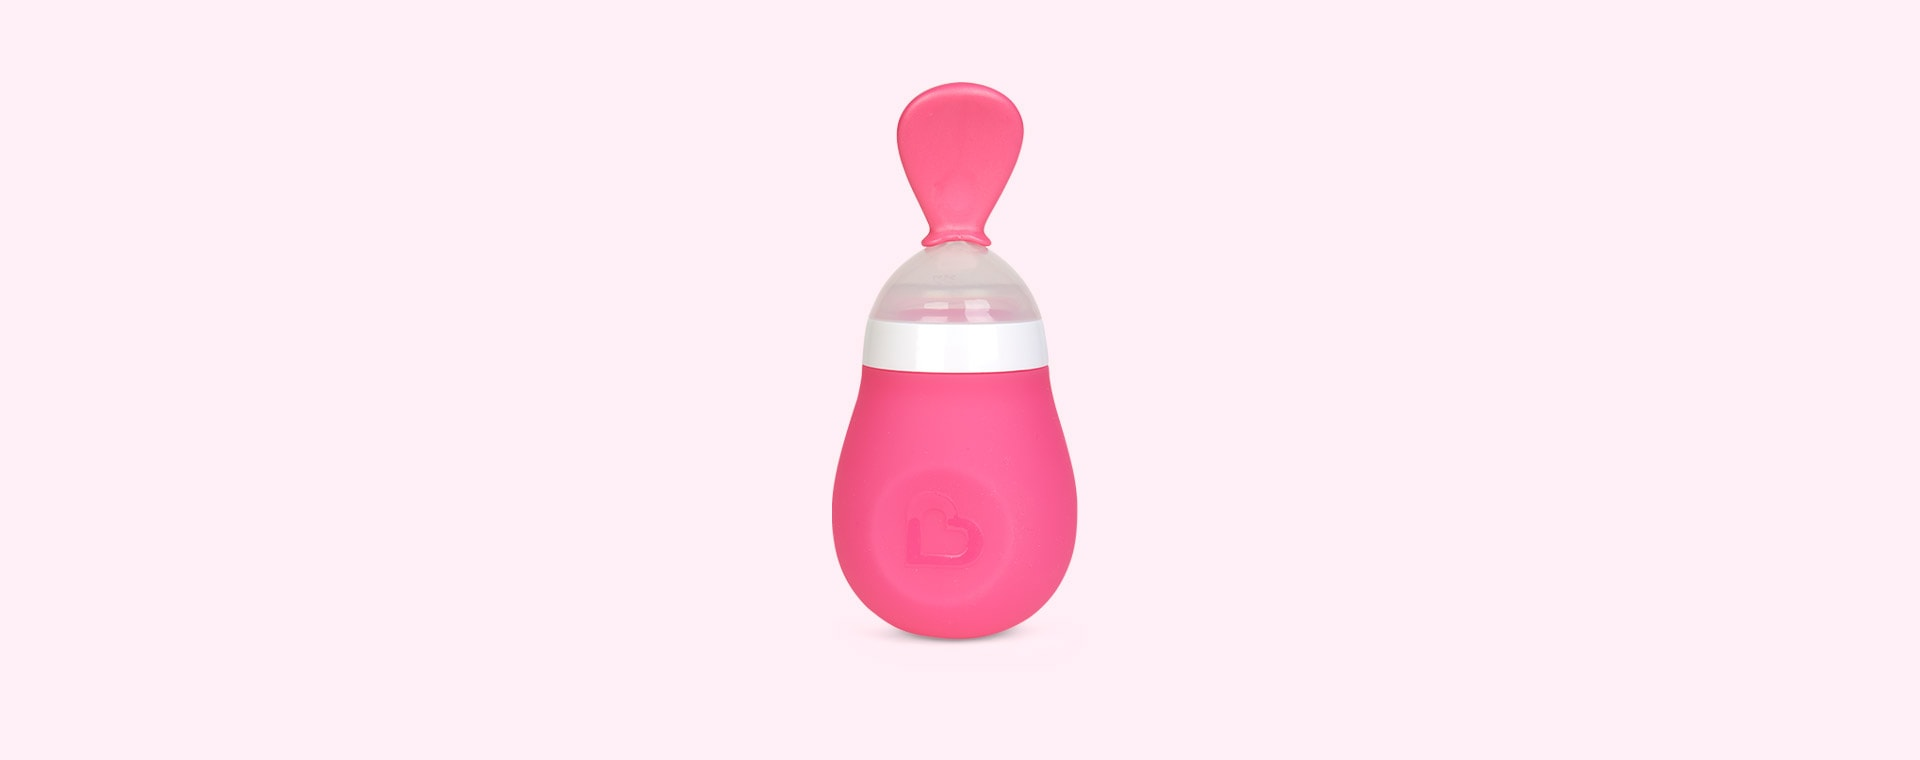 Pink Munchkin Squeeze Spoon